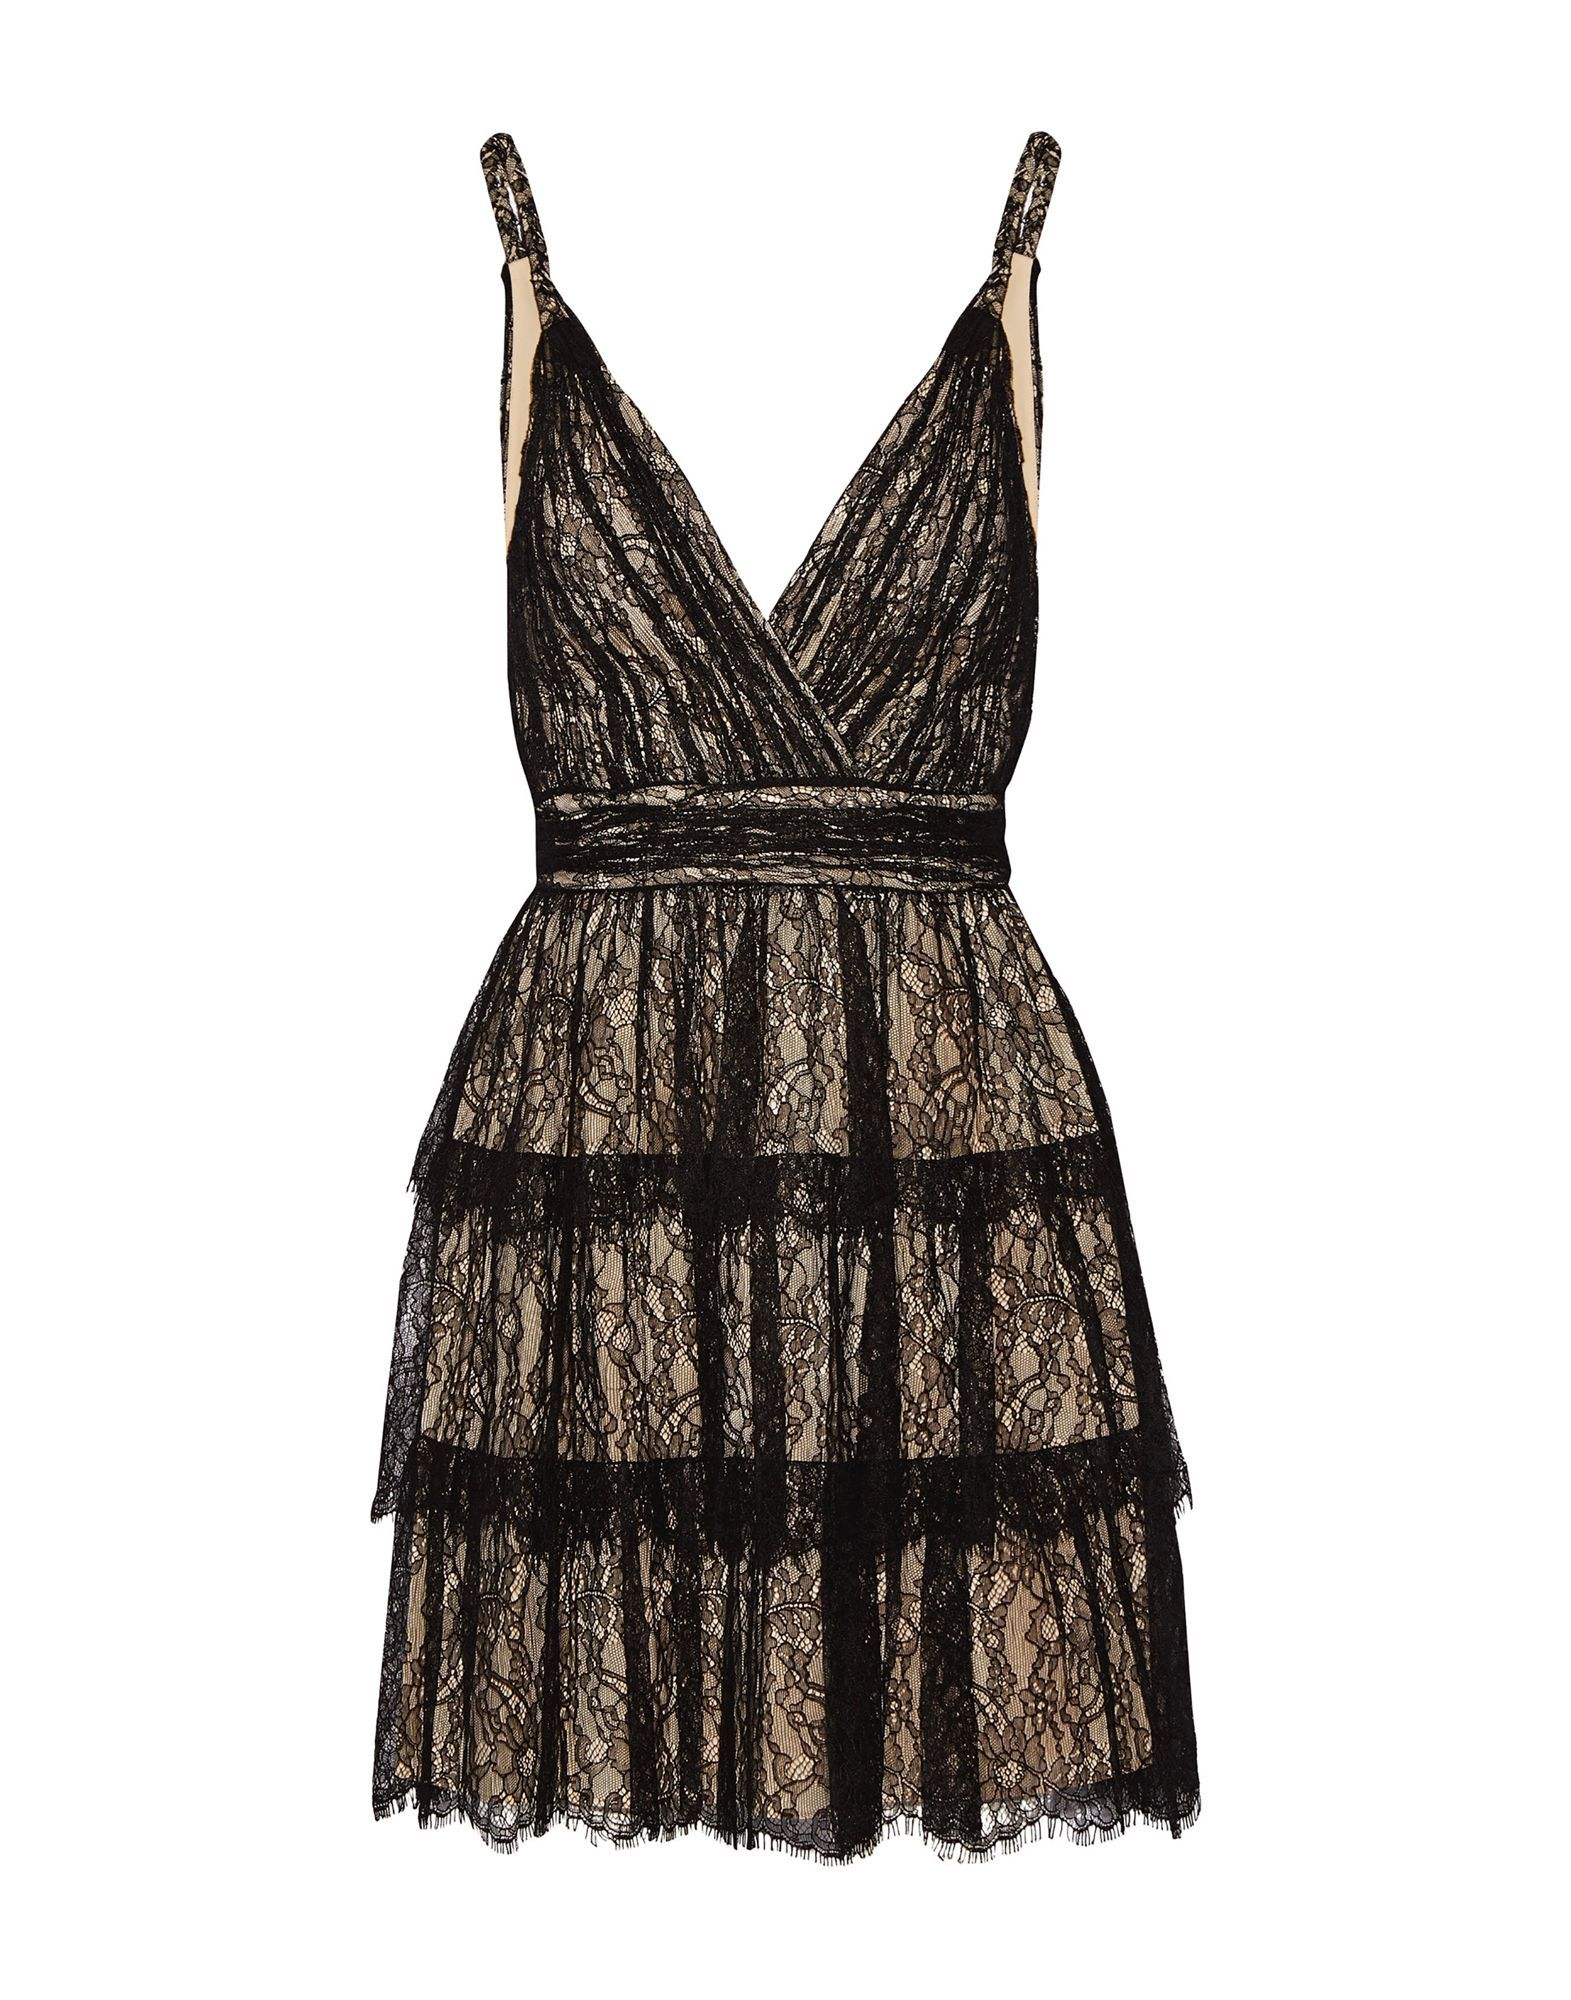 Alice + Olivia Black Tiered Lace Dress